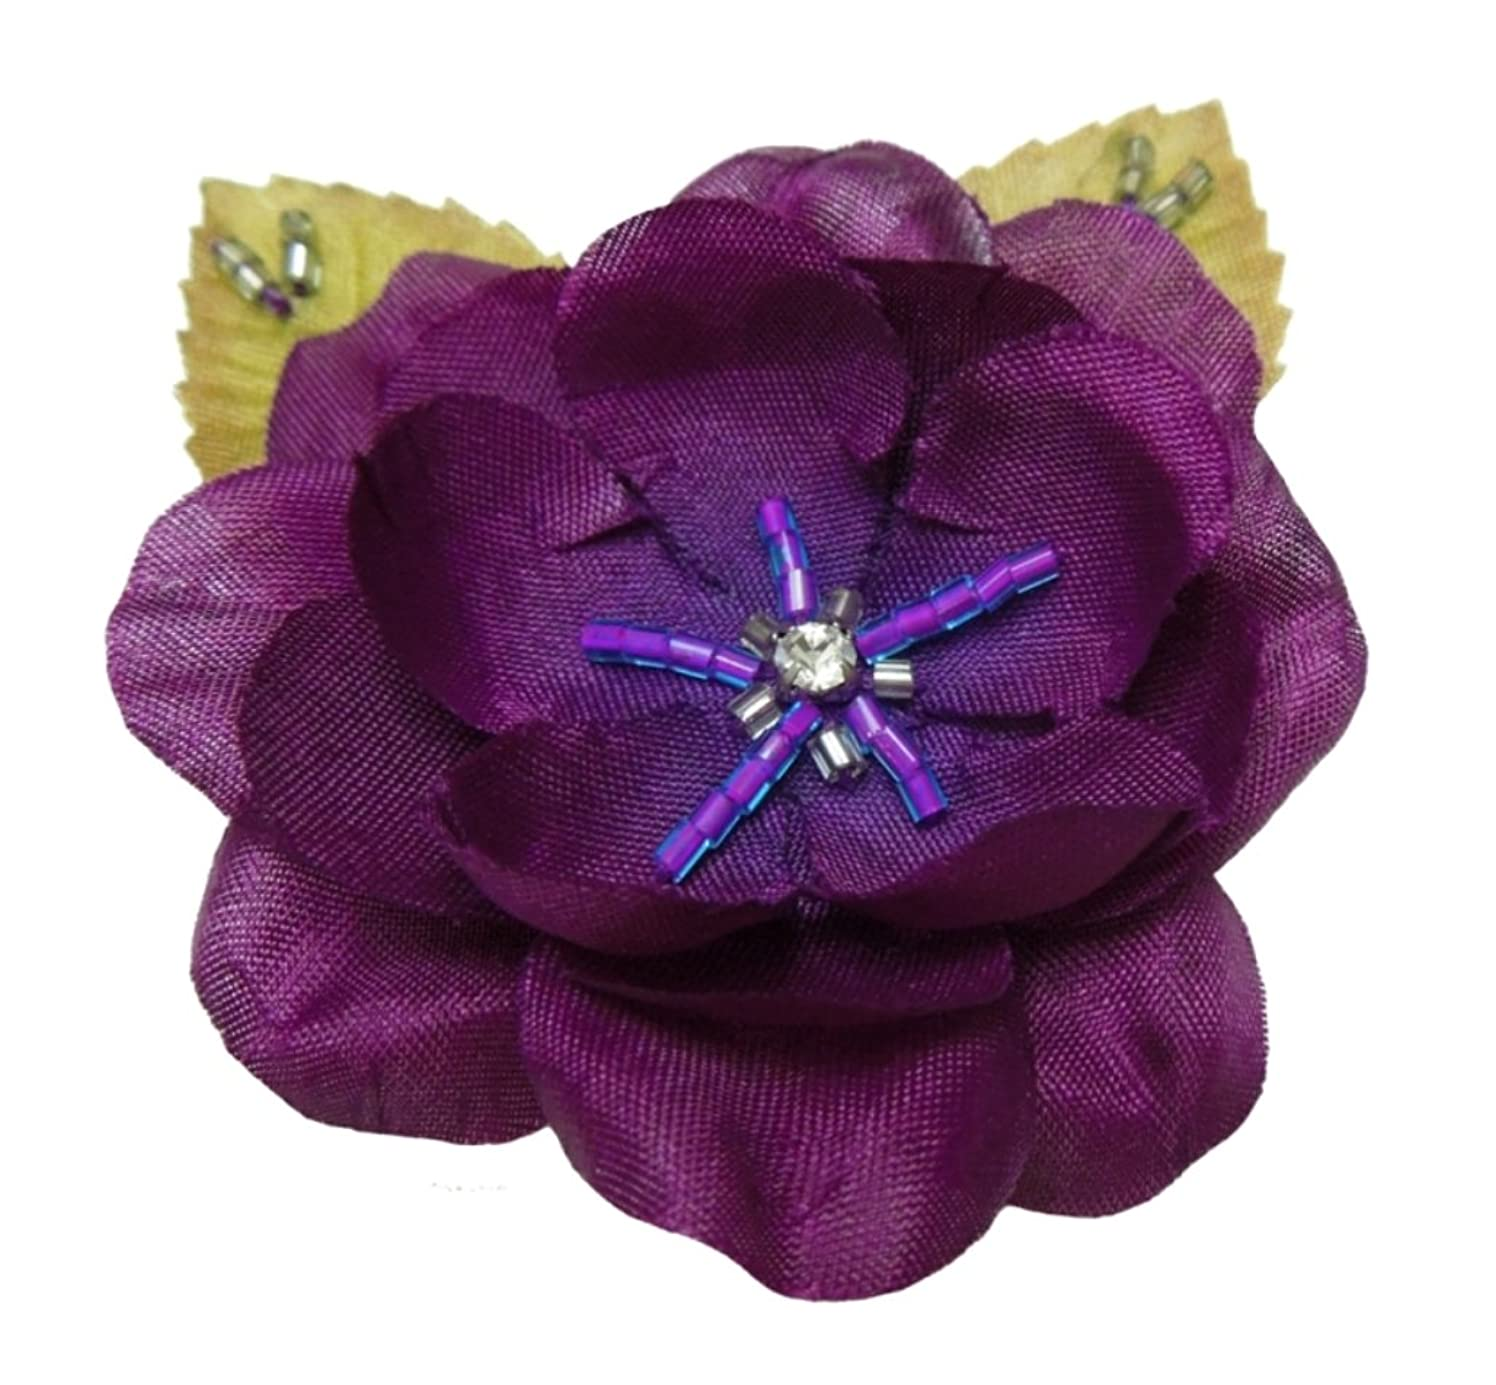 Cuteque International 6-Piece Pack Rhinestone Embellished Colorful Garden Roses with Leaves, Eggplant ysxqamxygvrk